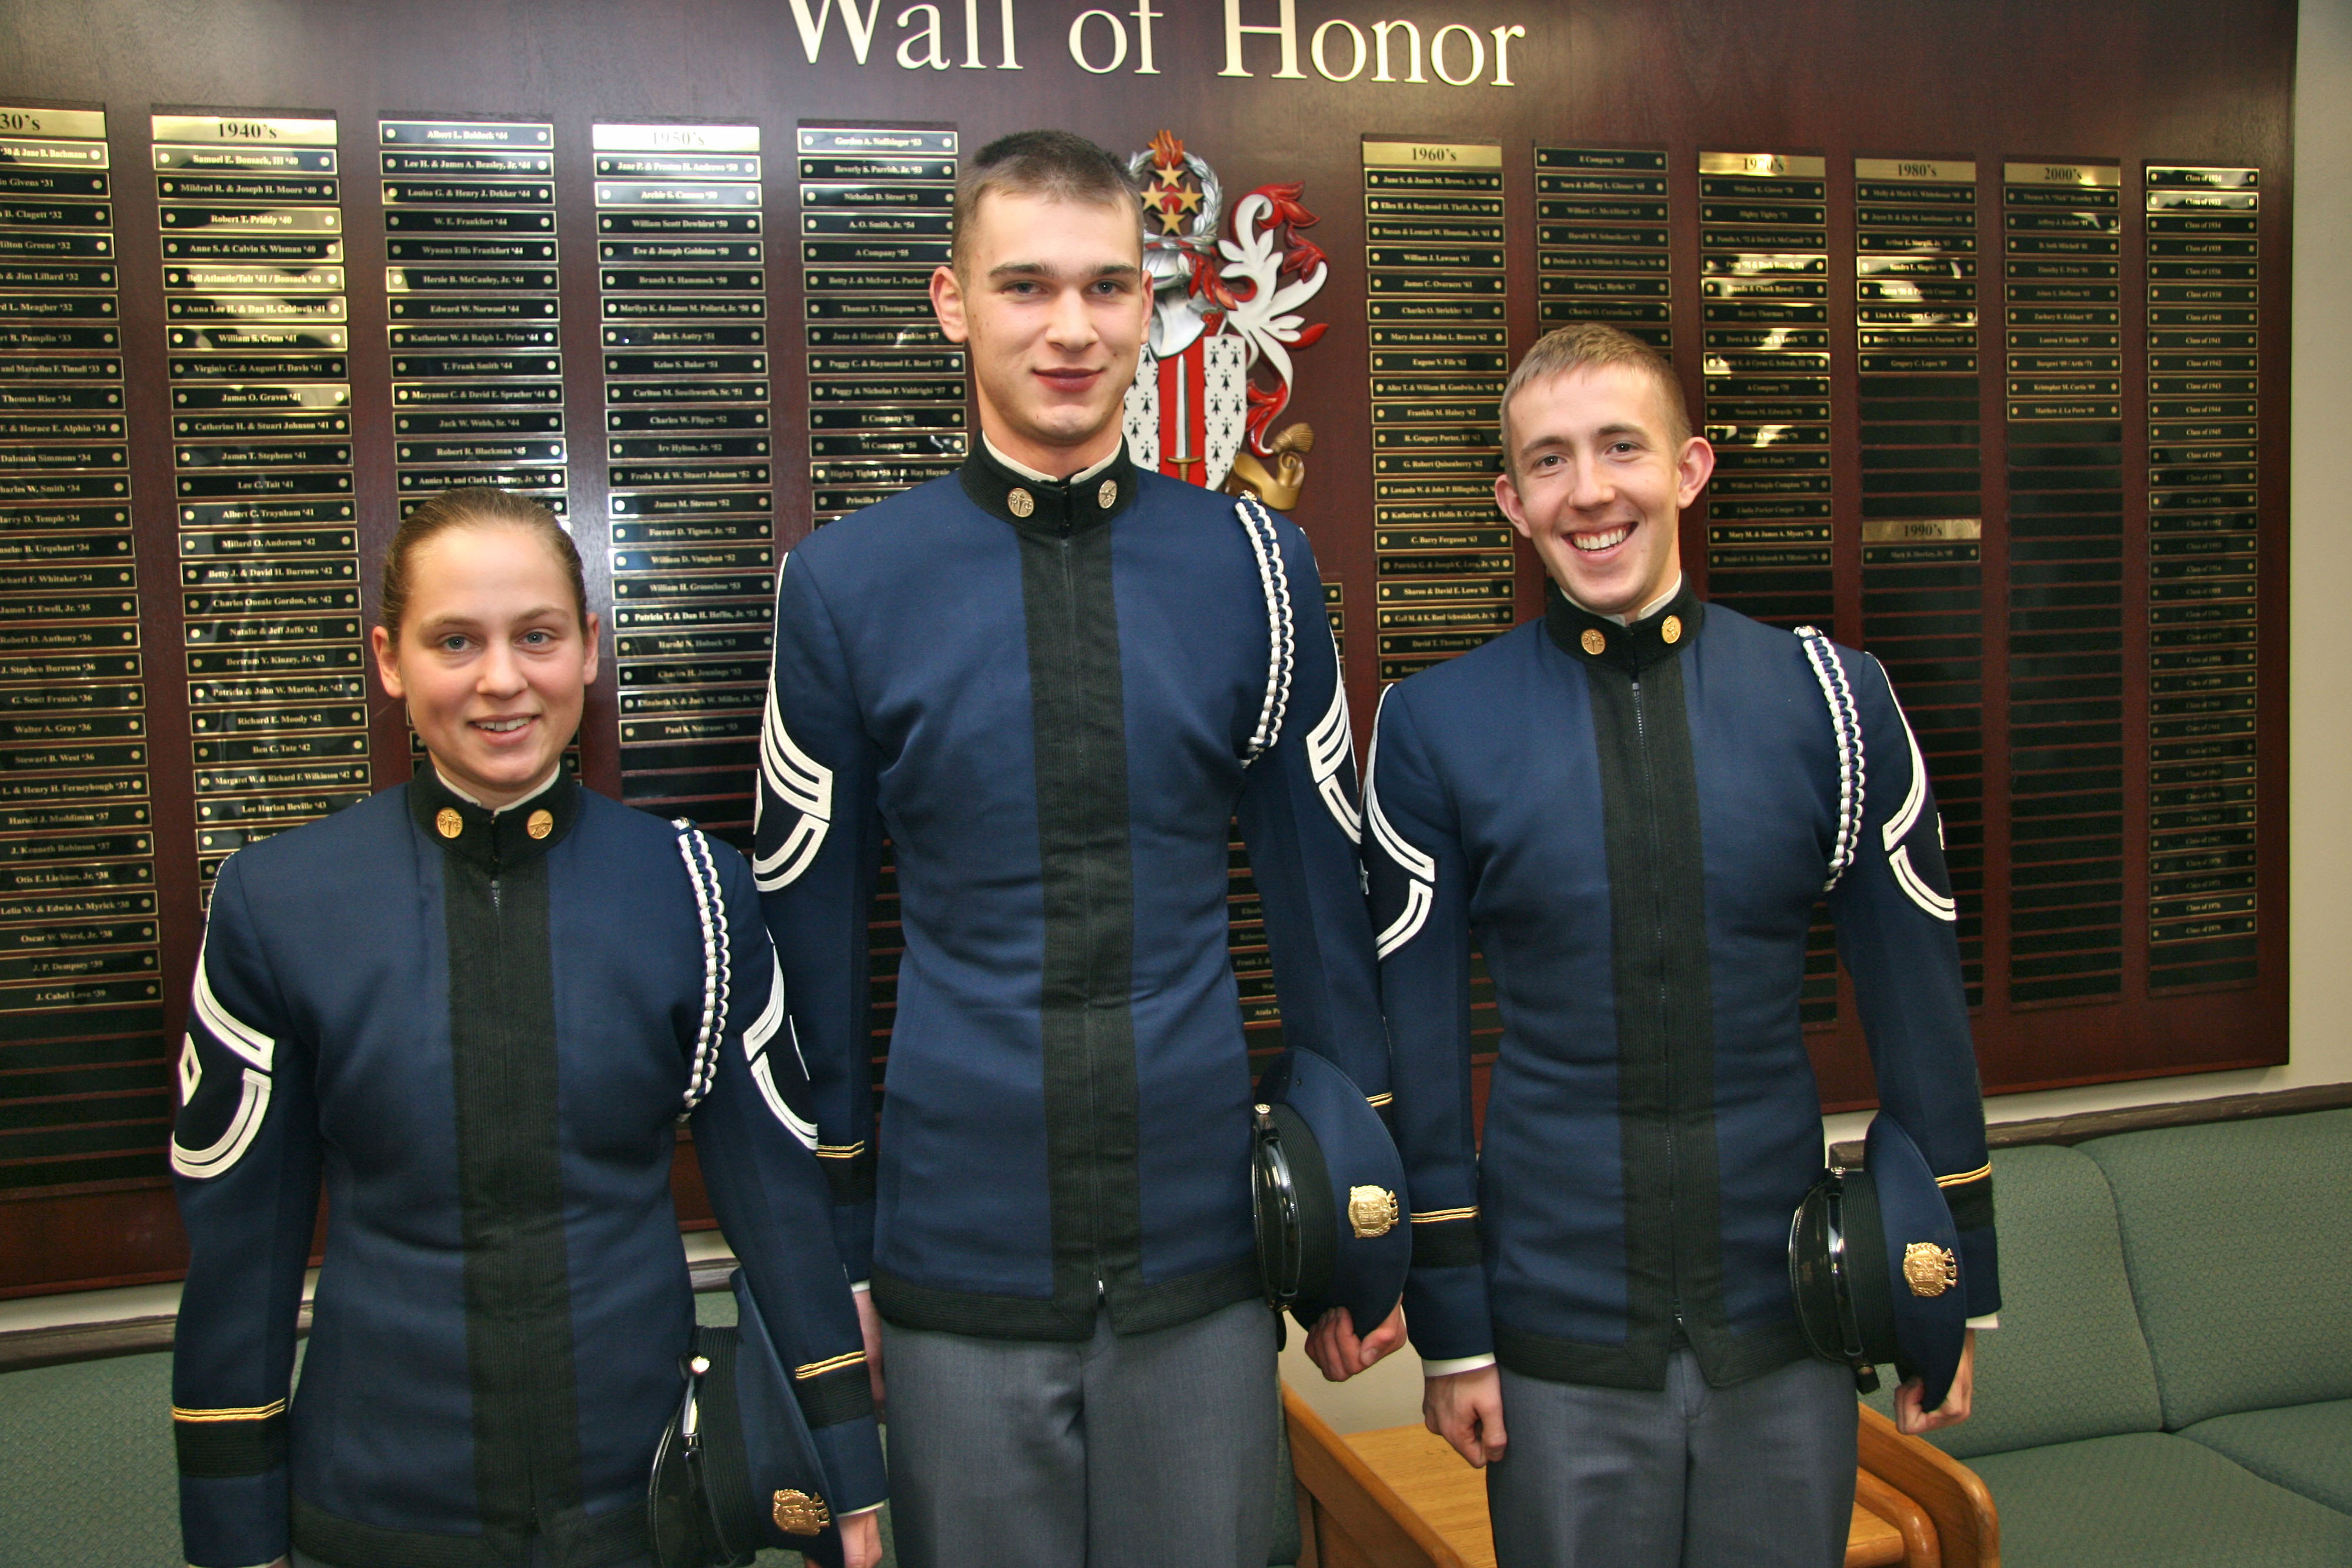 From left to right are Cadets Faith Mueller, Justin Hunts, and Charles Goodman